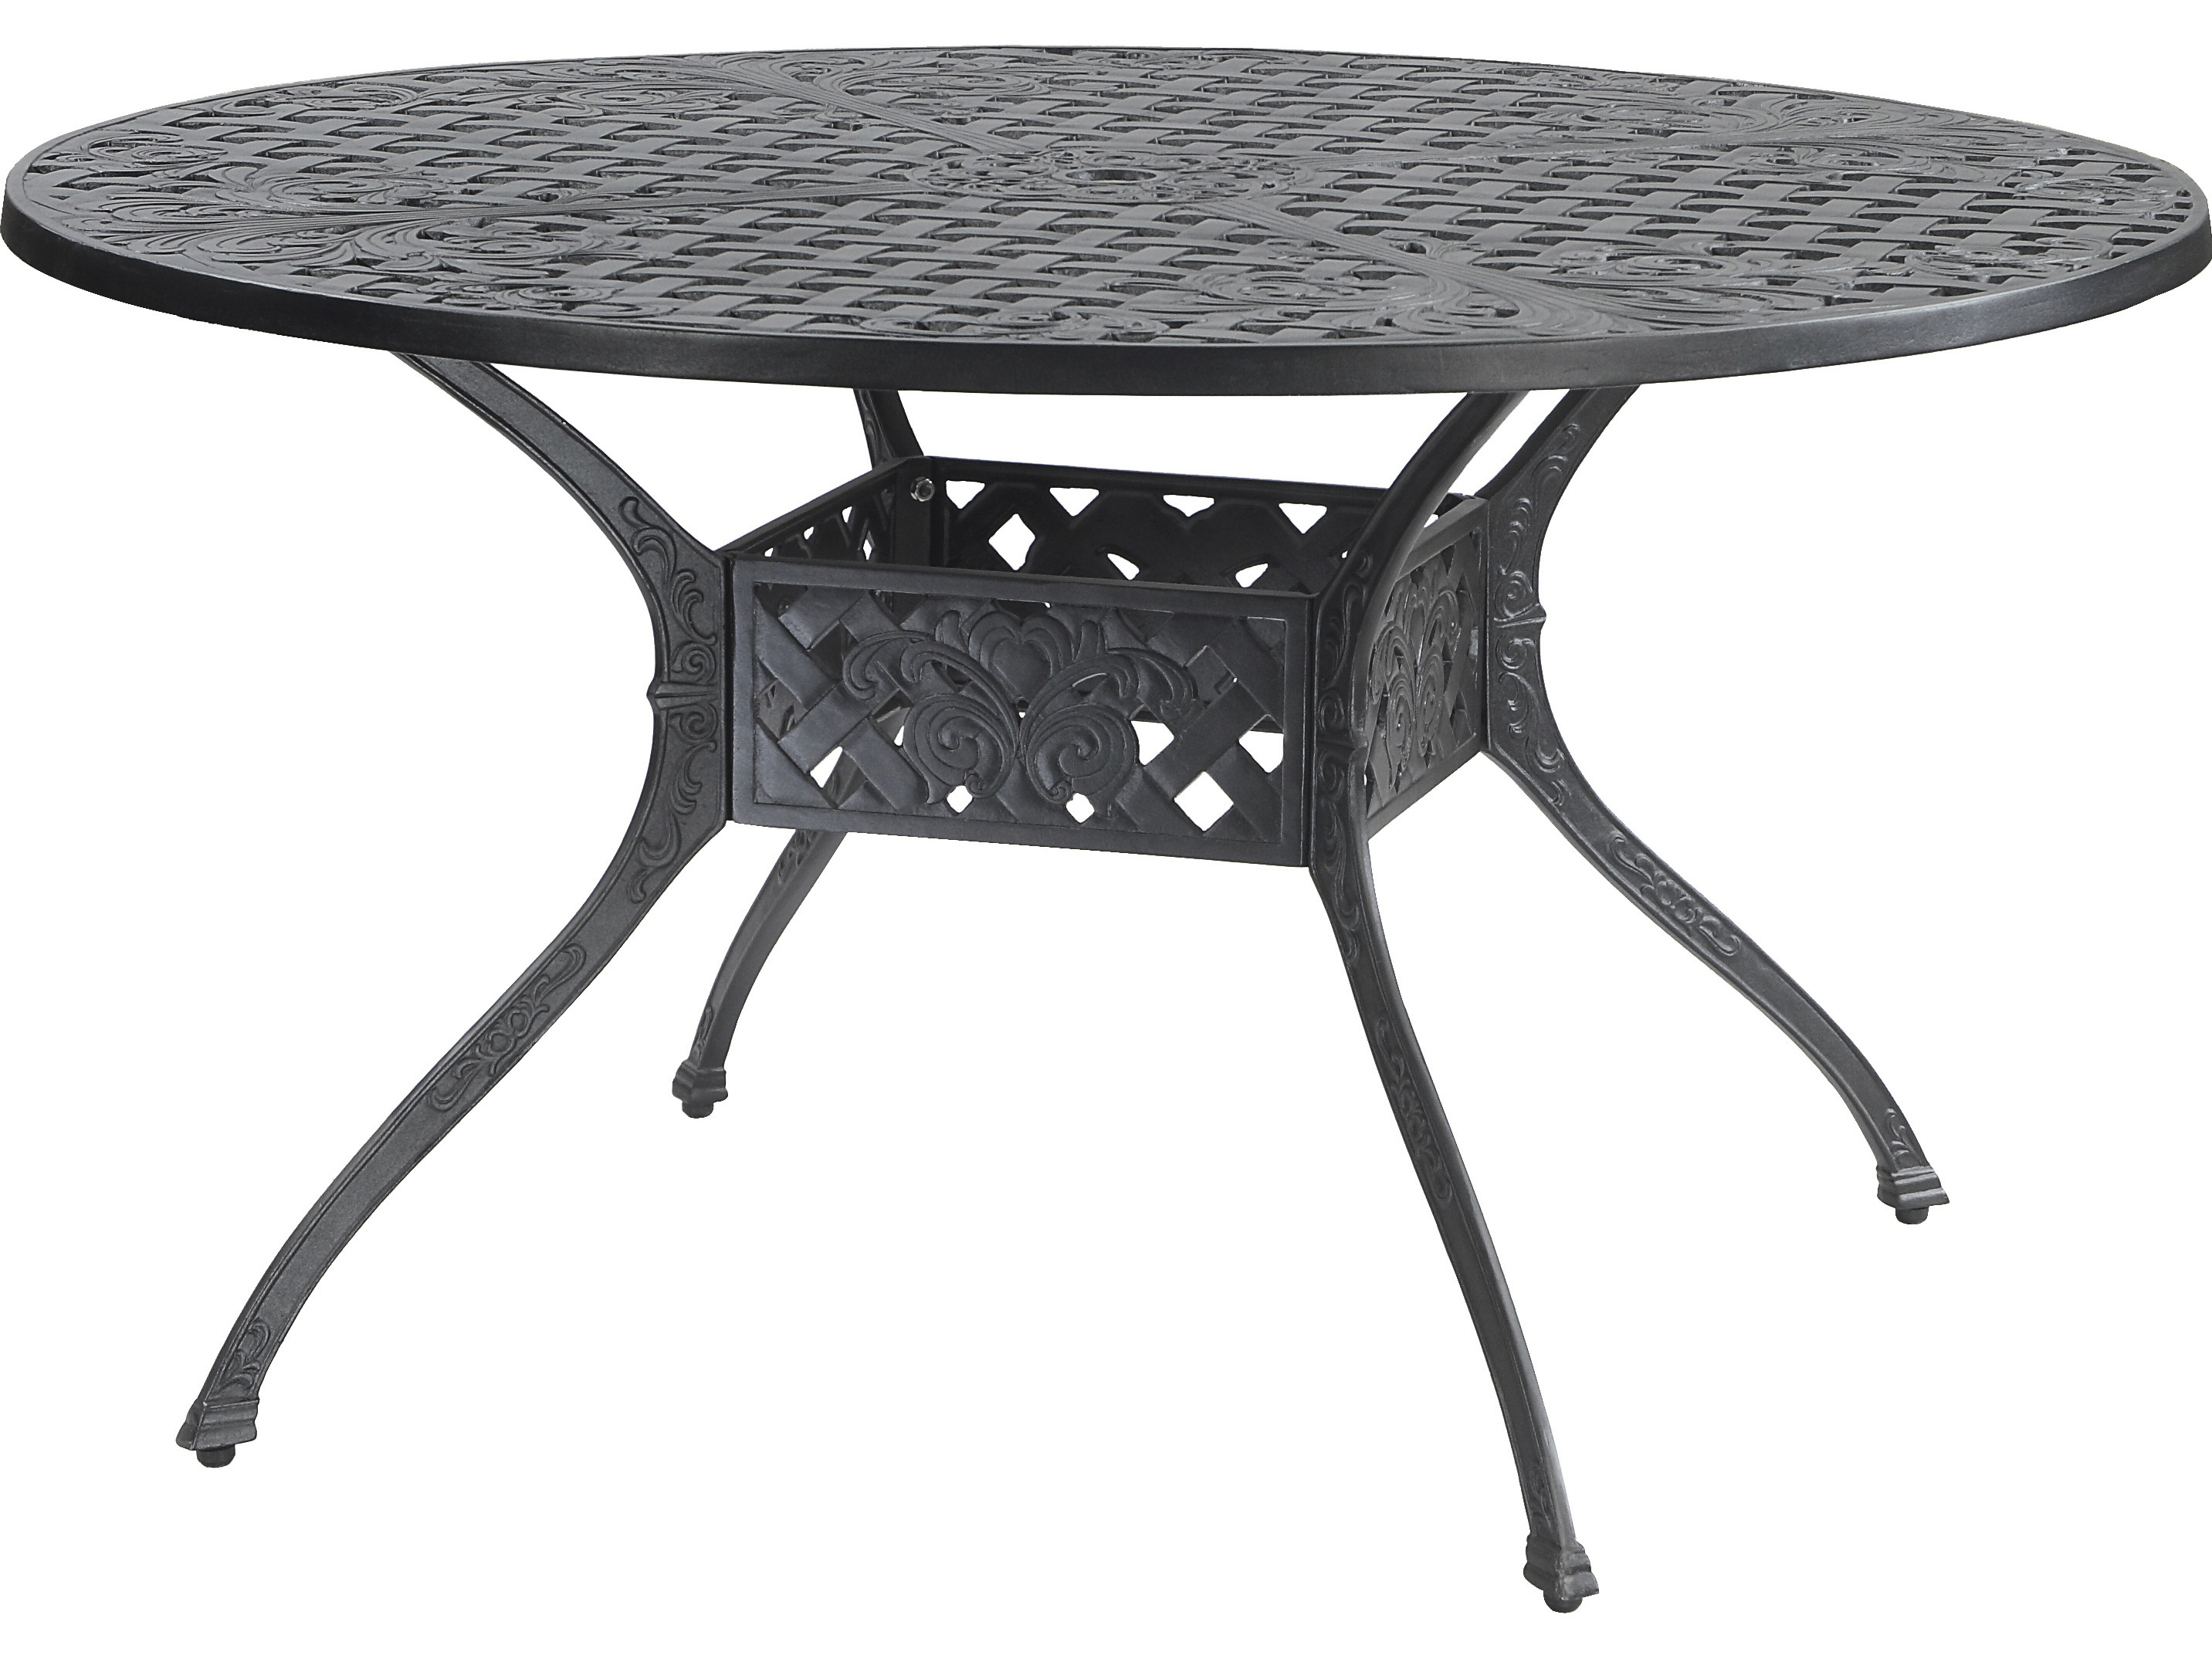 6feed9573fa8 GenSun Verona Cast Aluminum 48 Round Dining Table with Umbrella Hole |  GES80410A48